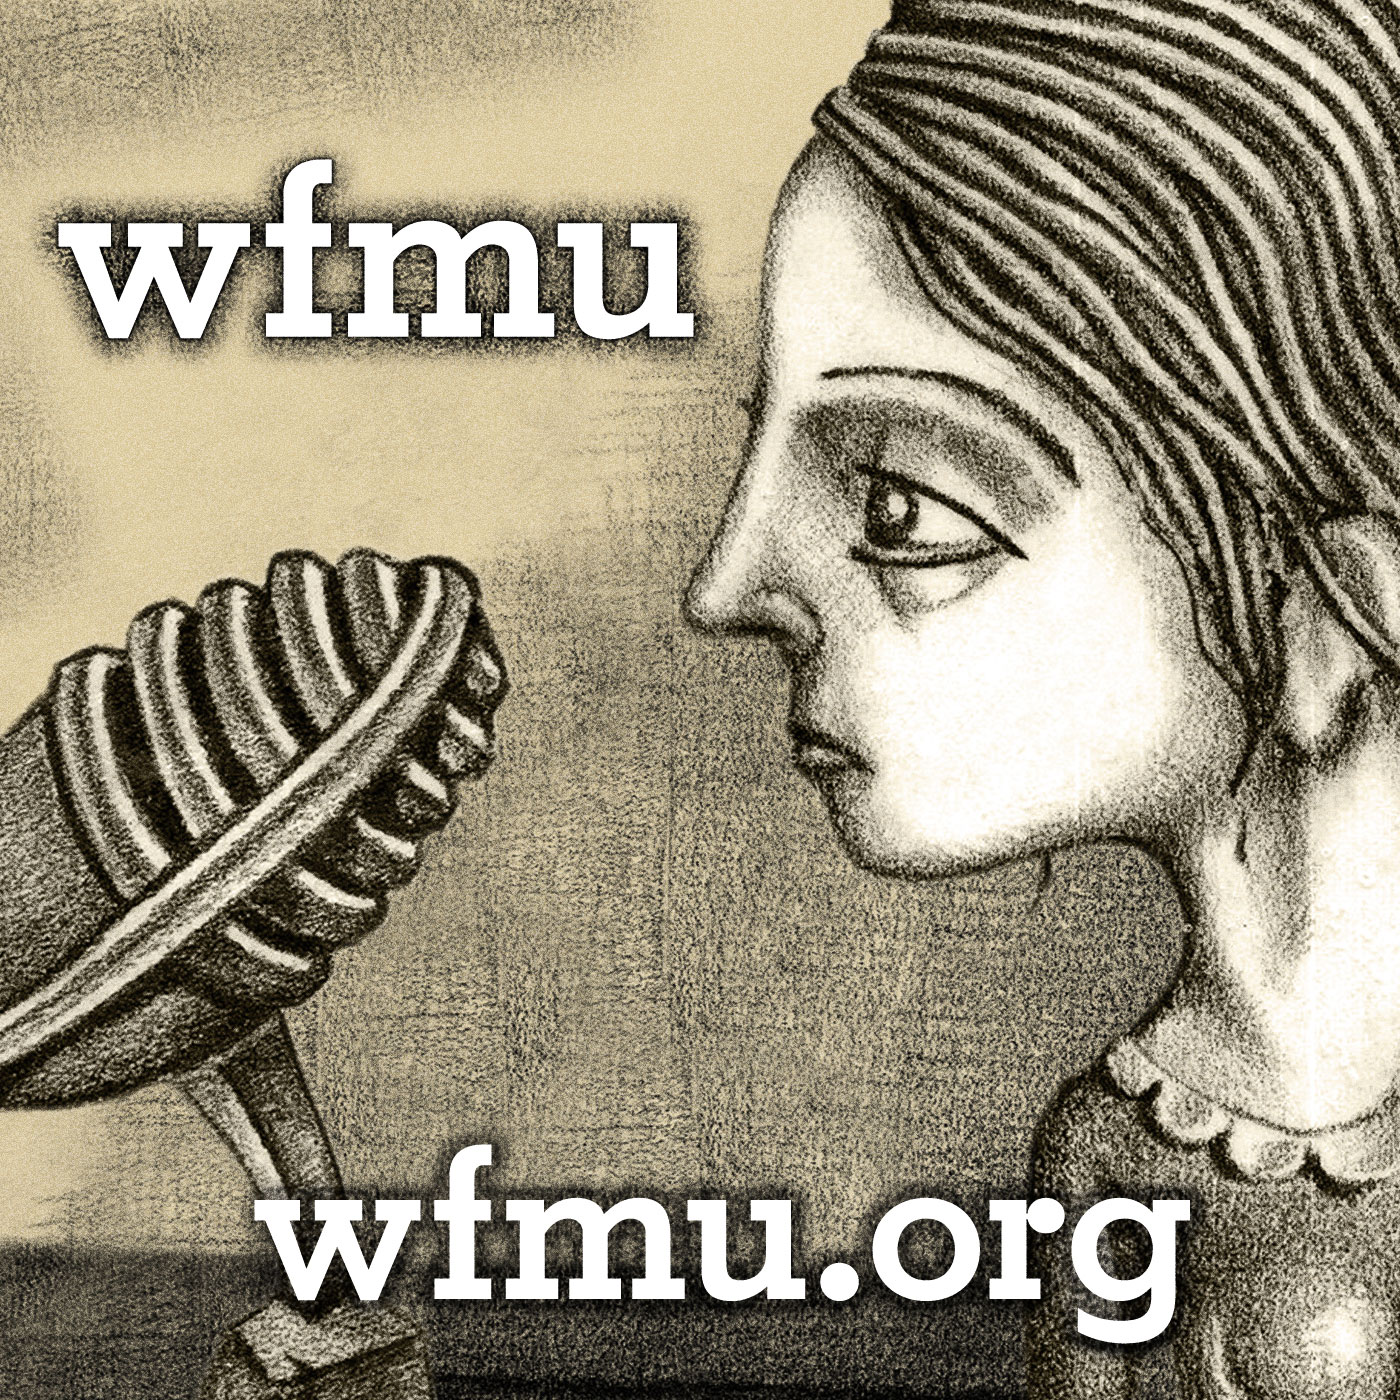 Sportsy Talk with Bronwyn C. and Jim the Poet | WFMU